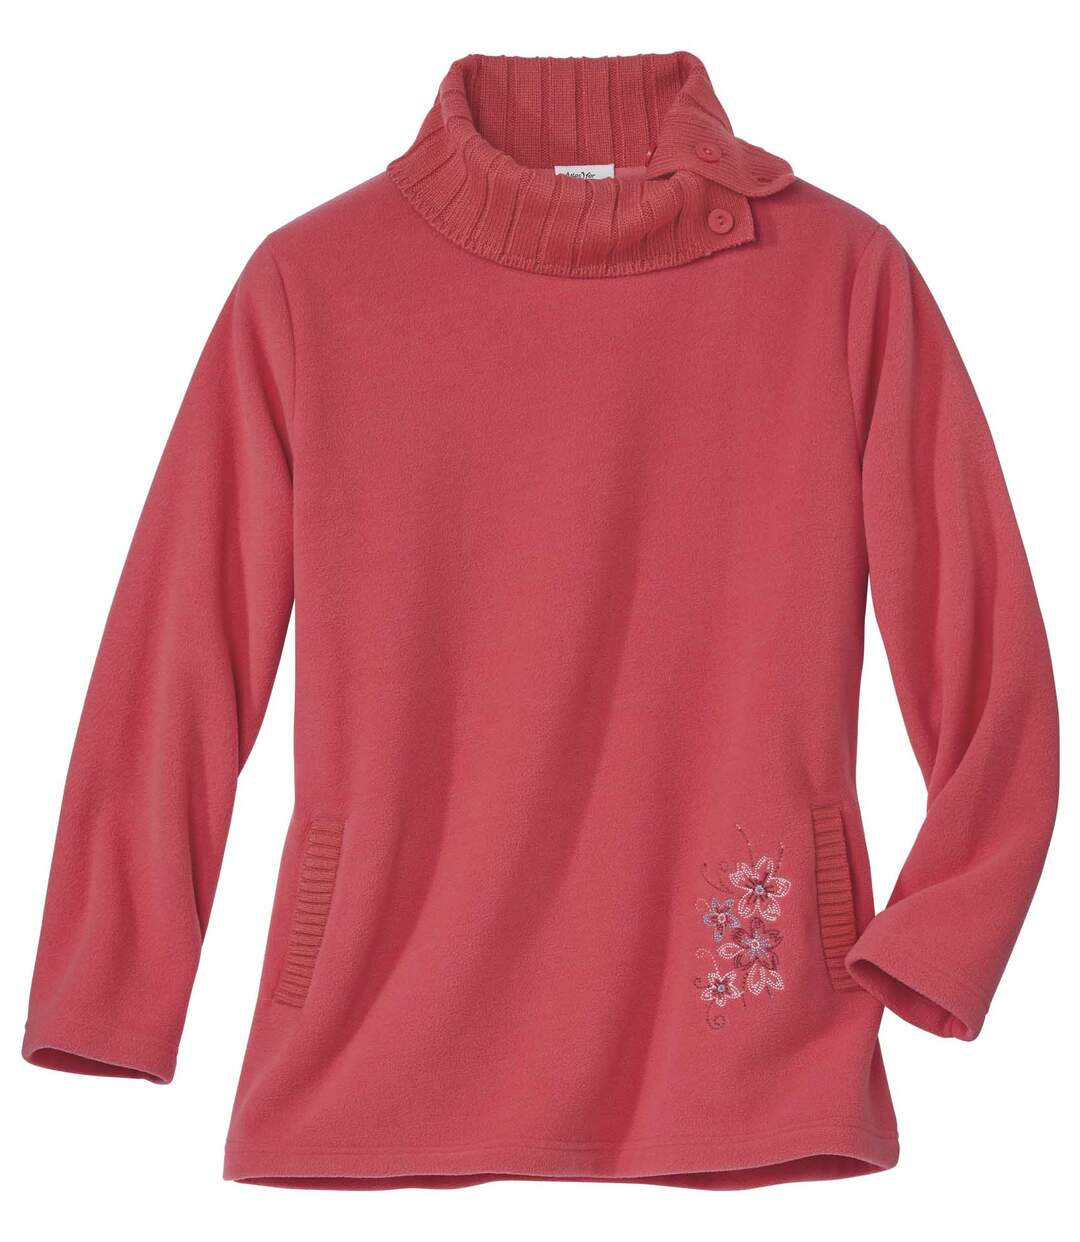 Tunika-Pullover Tendance aus Strick und Fleece